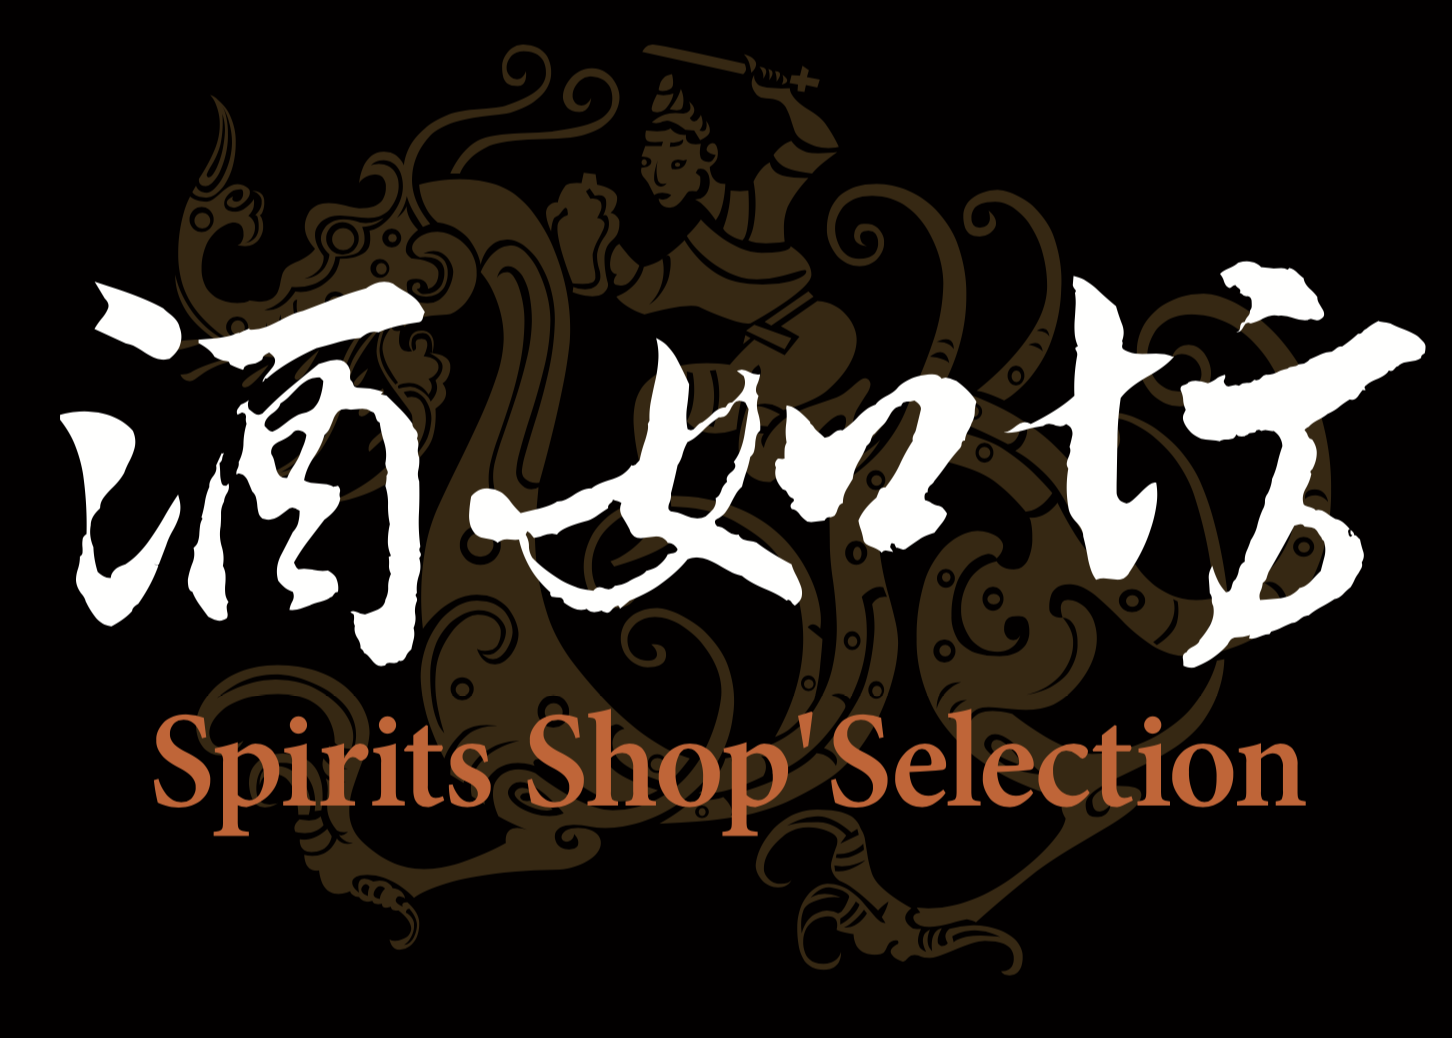 酒如坊 Spirits Shop' Selection